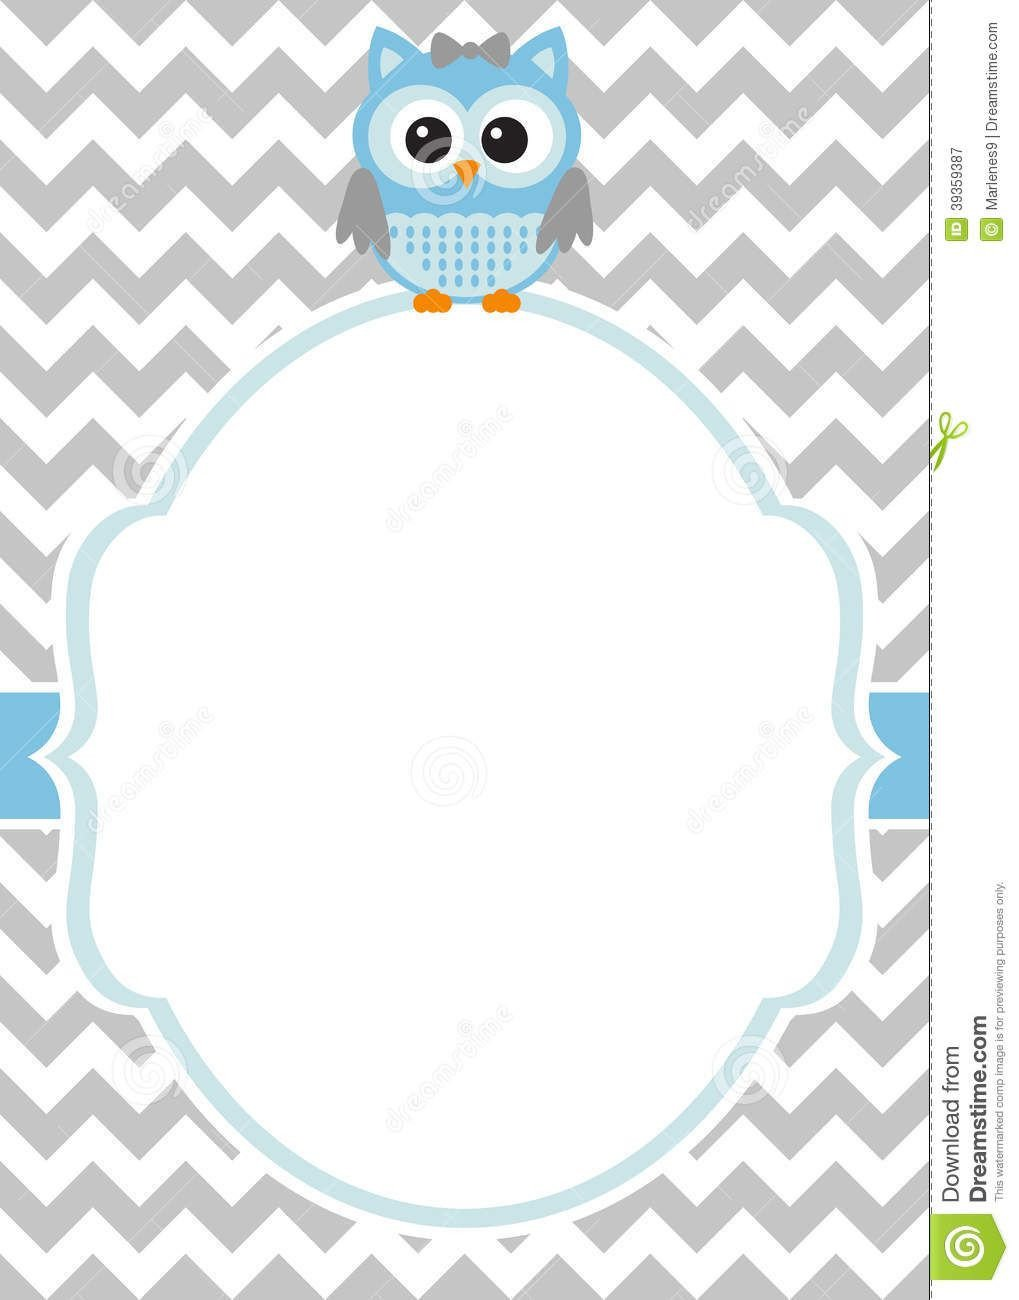 Baby Shower Invitation Free Template Baby Shower Invitations Cards Designs Baby Shower